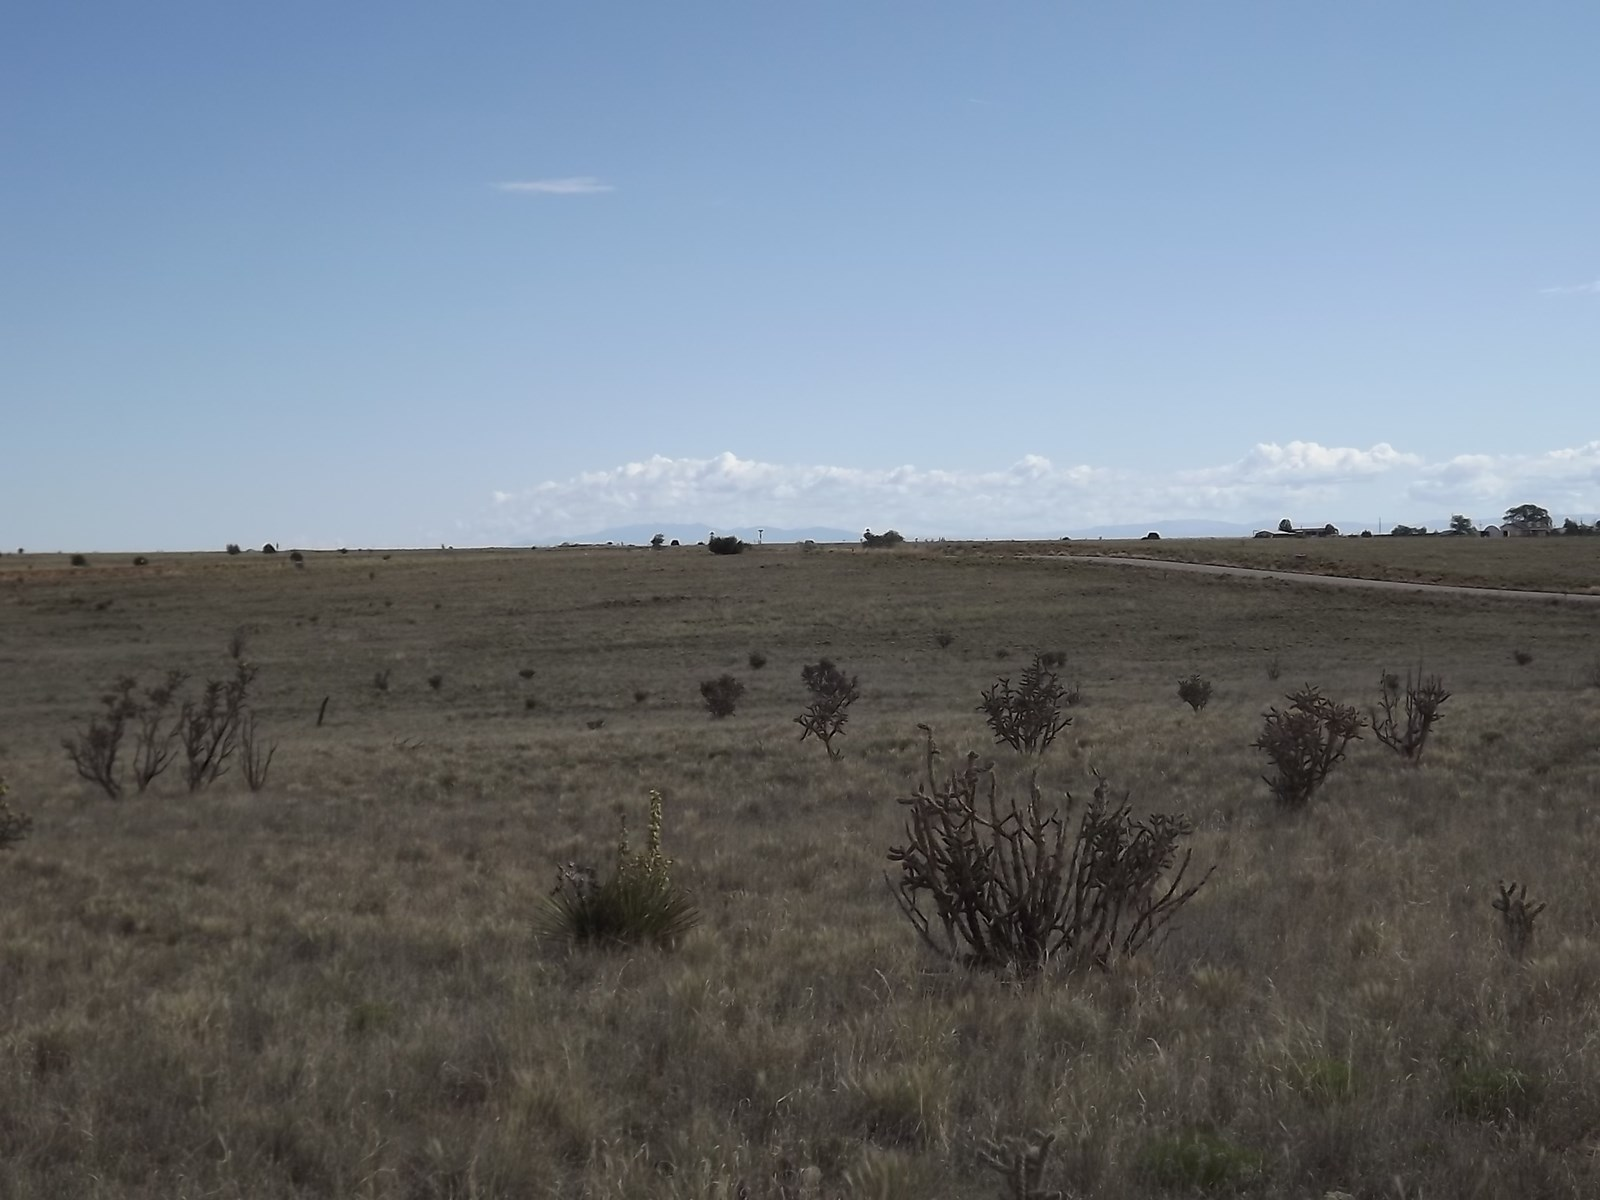 16.59 Acres For Sale In The Heart Of Edgewood New Mexico